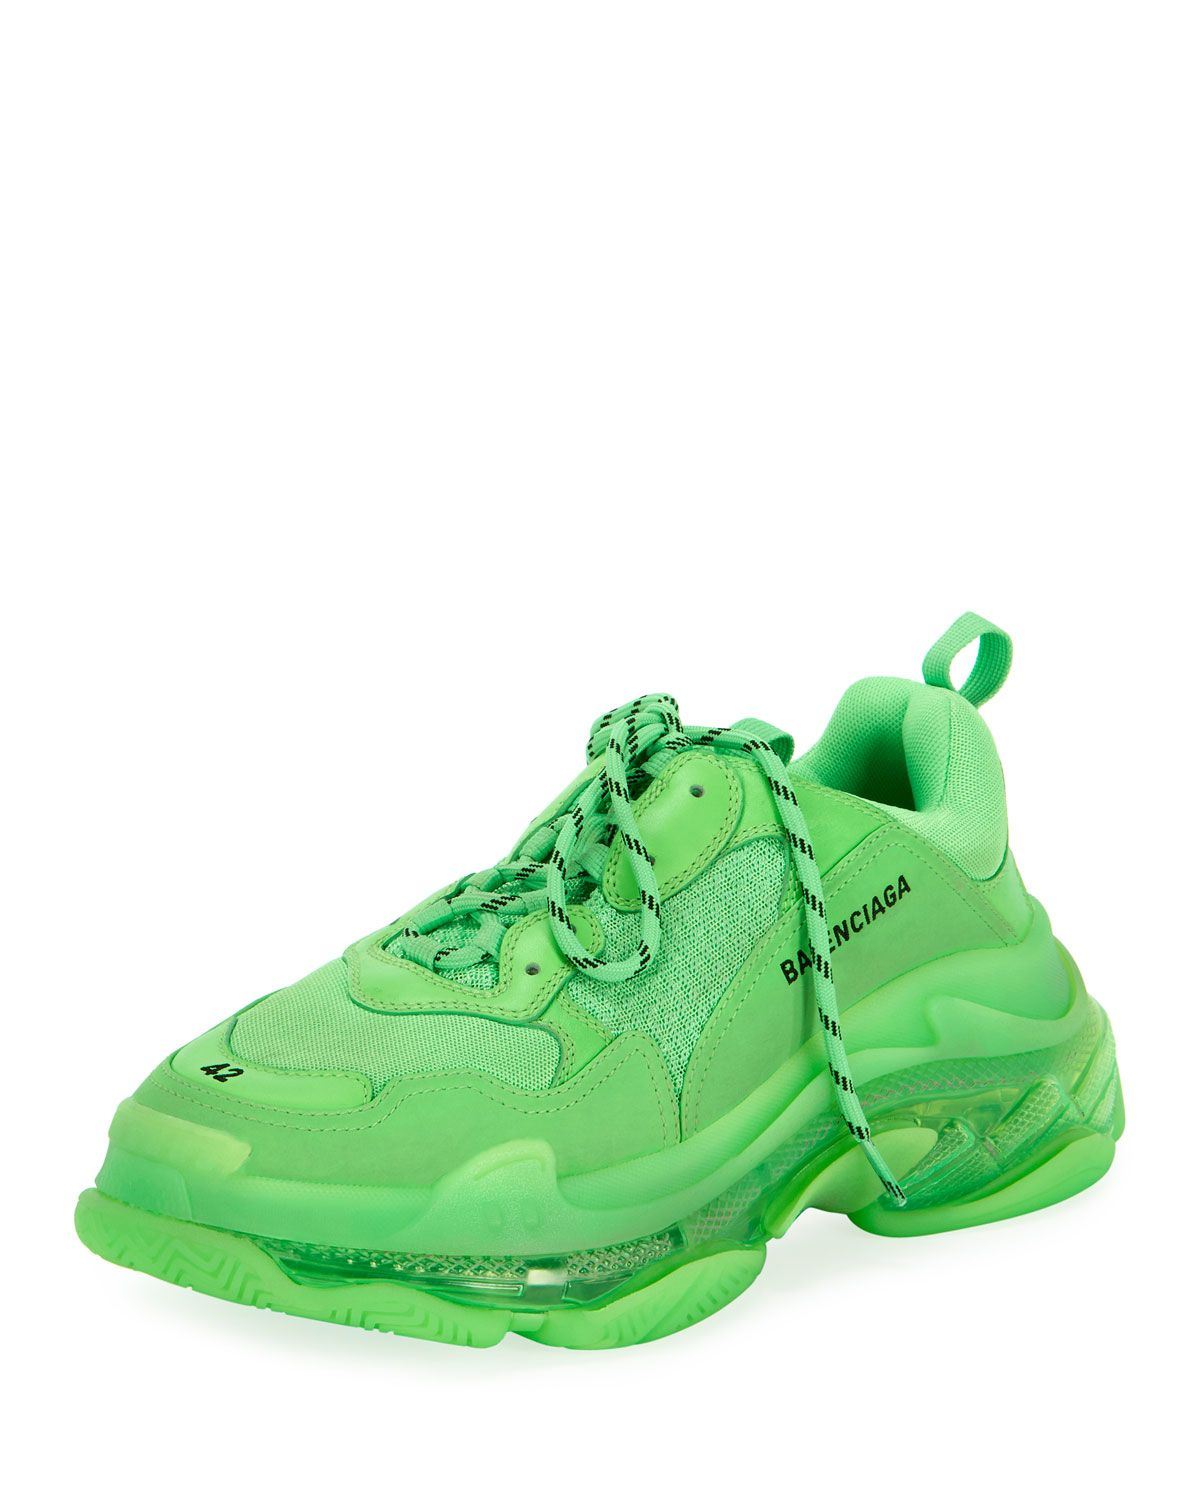 san francisco new authentic detailing BALENCIAGA MEN'S TRIPLE S MESH & LEATHER CLEAR-SOLE SNEAKERS ...